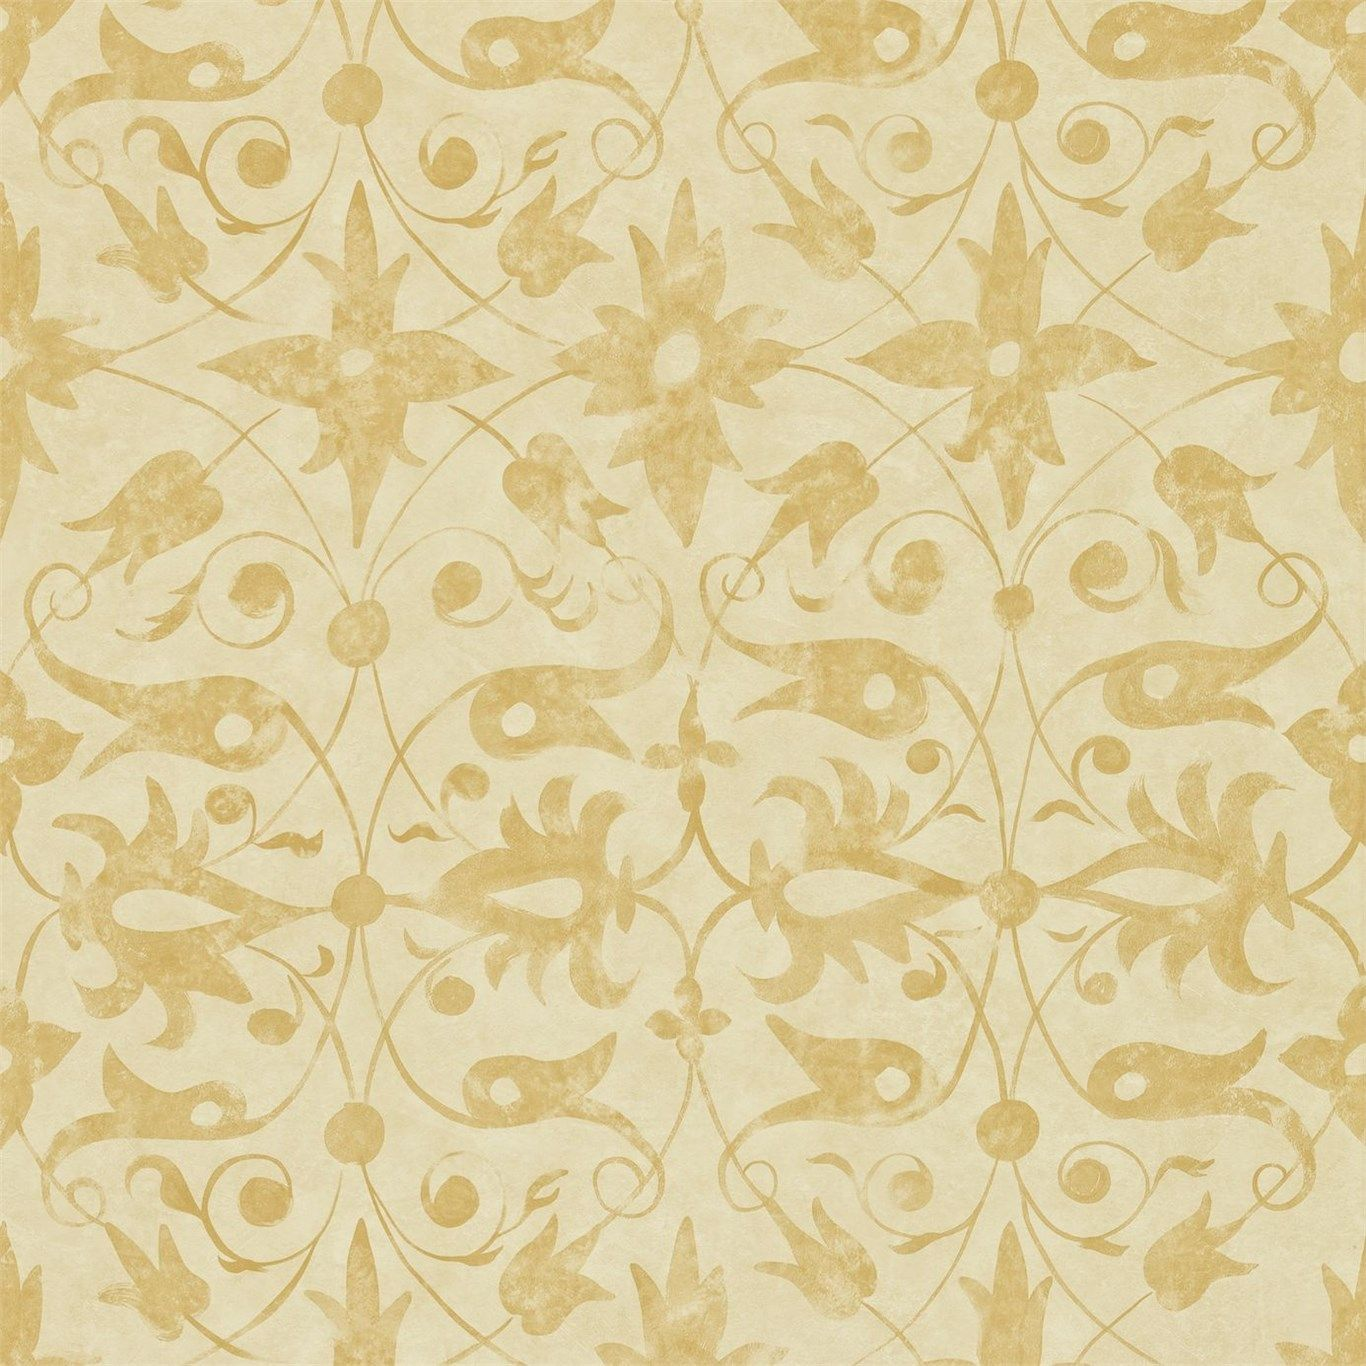 Saffron Walden Tracery 310435 | Wallpaper, Living room ideas and ...